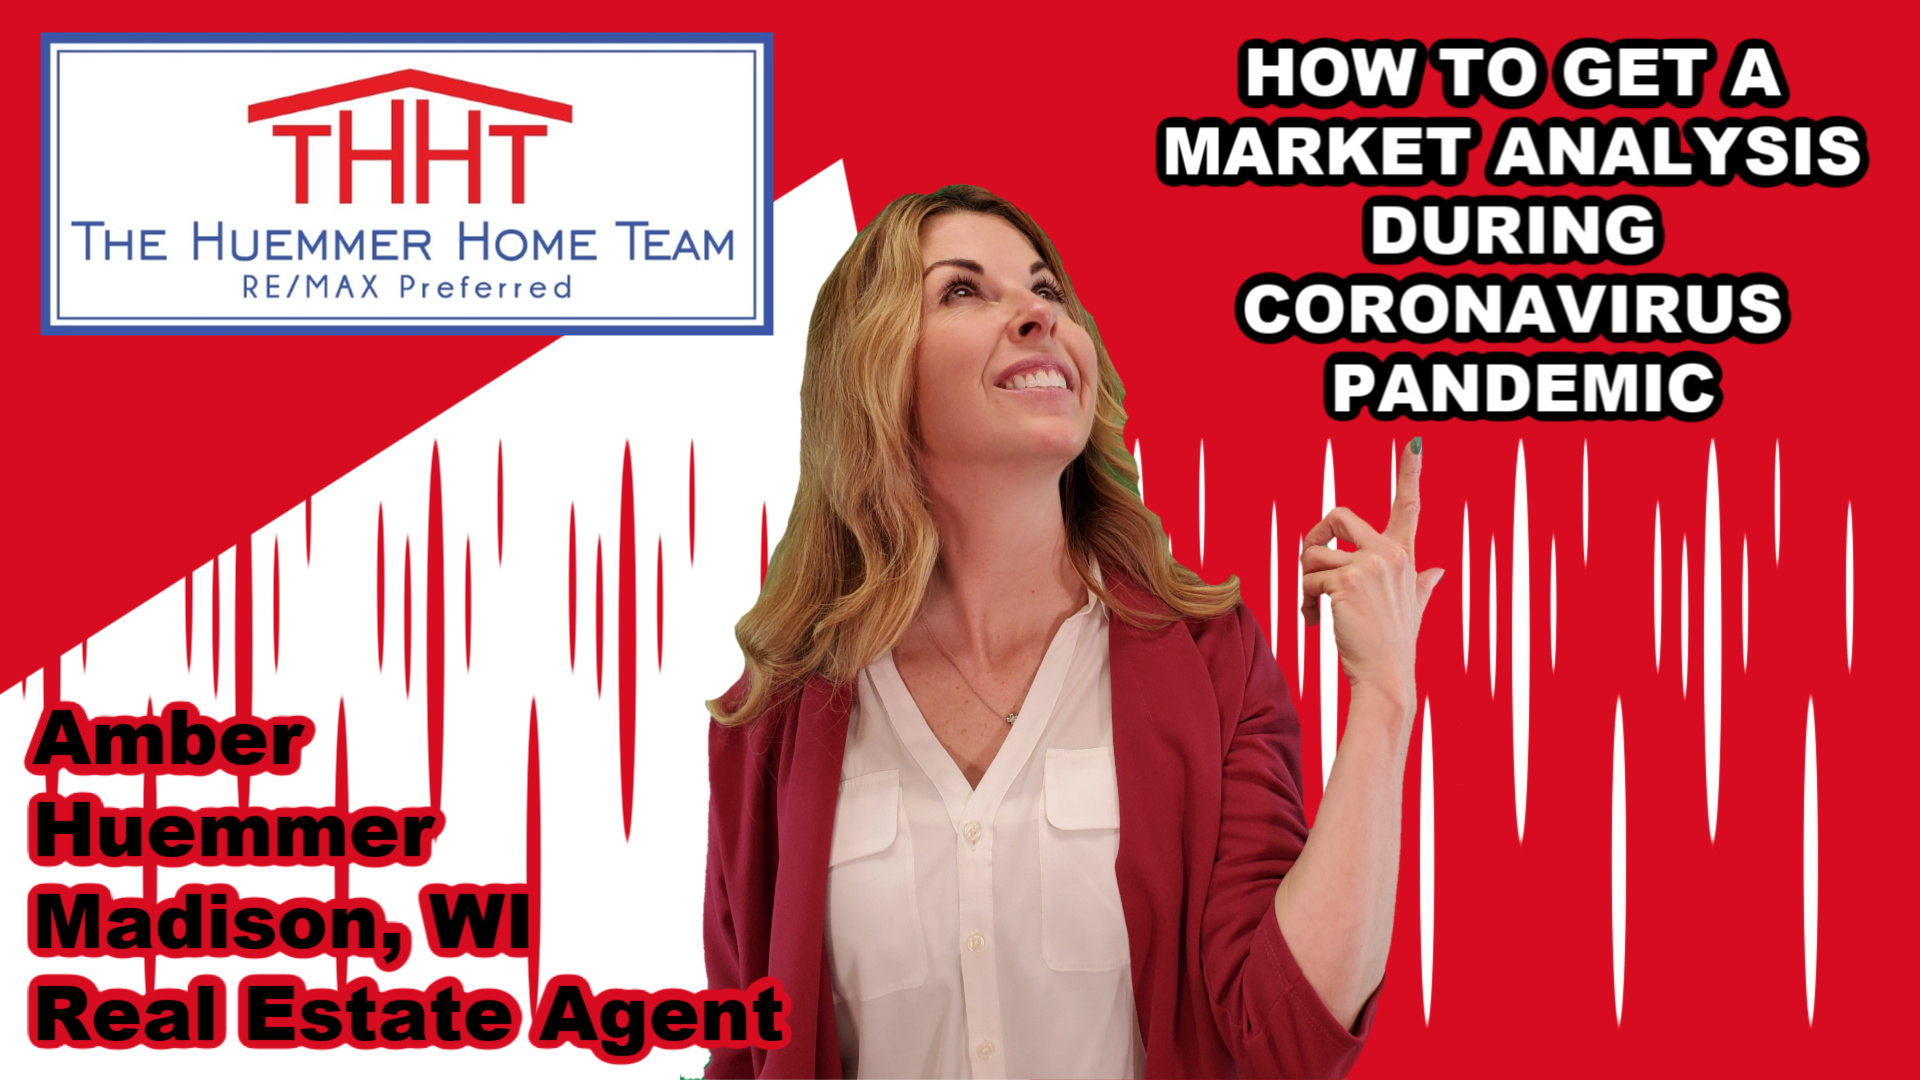 How To Get A Market Analysis During Coronavirus Pandemic | The Huemmer Home Team | Amber Huemmer